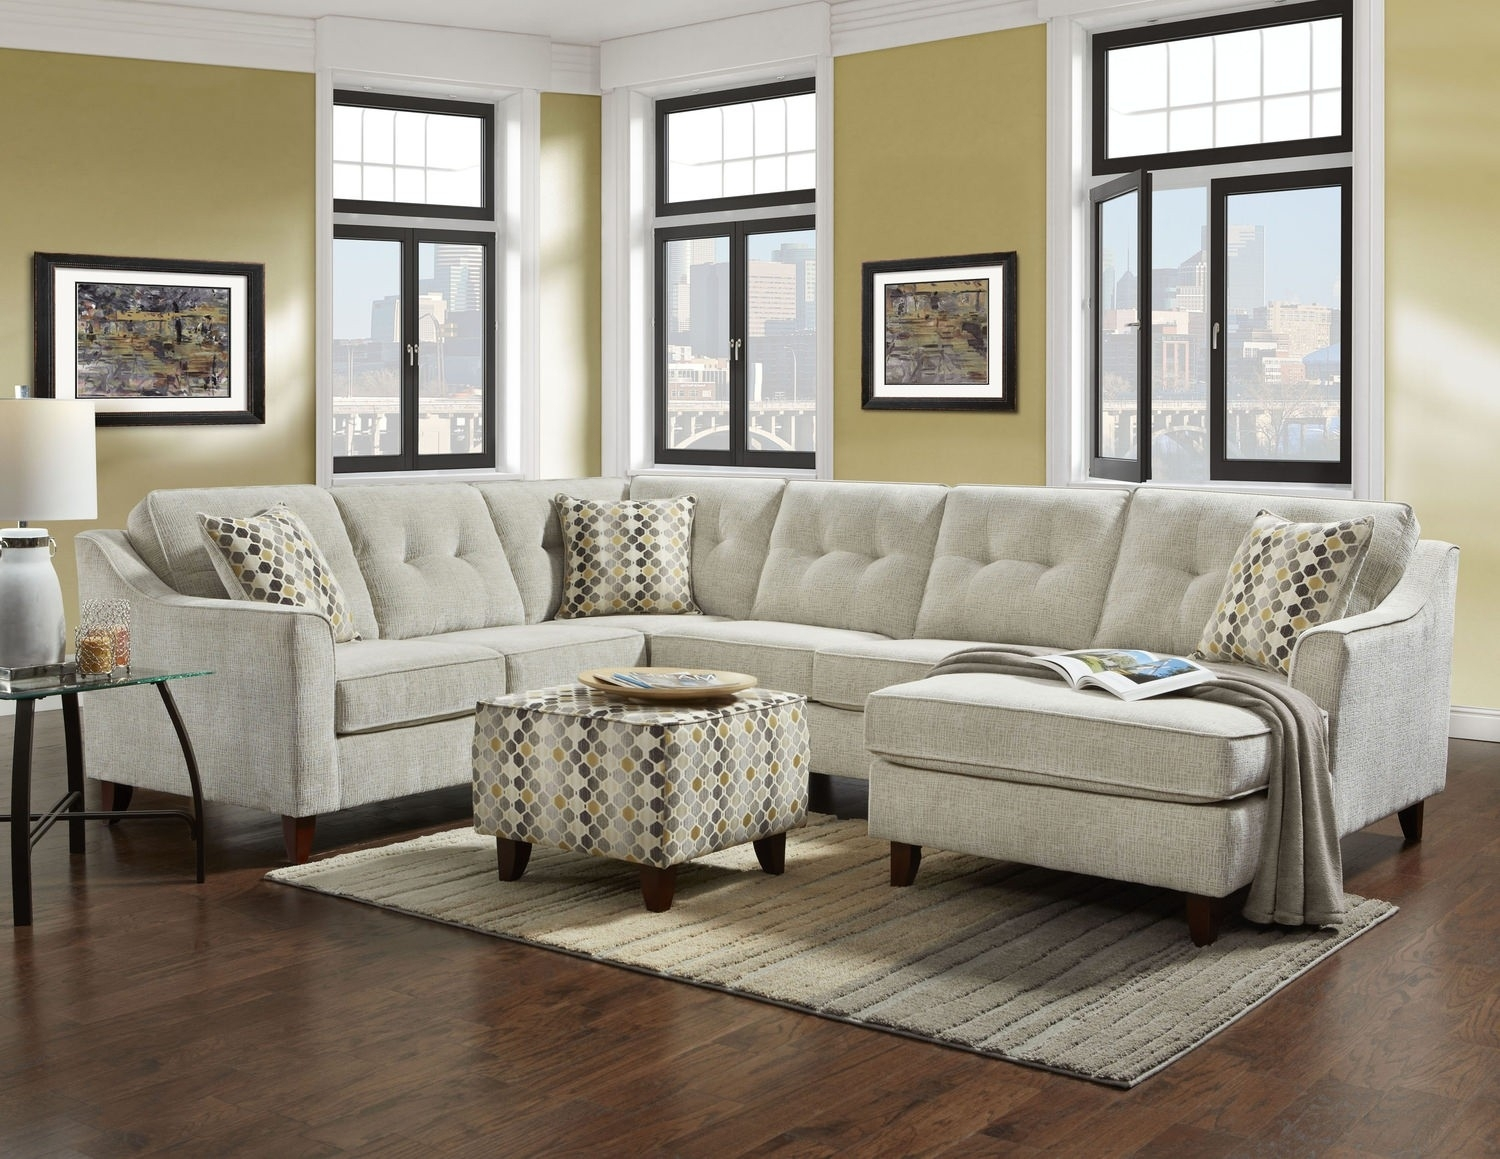 3 Piece Sectional Malbry Point W Laf Chaise Living Spaces 223533 0 Regarding Malbry Point 3 Piece Sectionals With Laf Chaise (View 16 of 25)